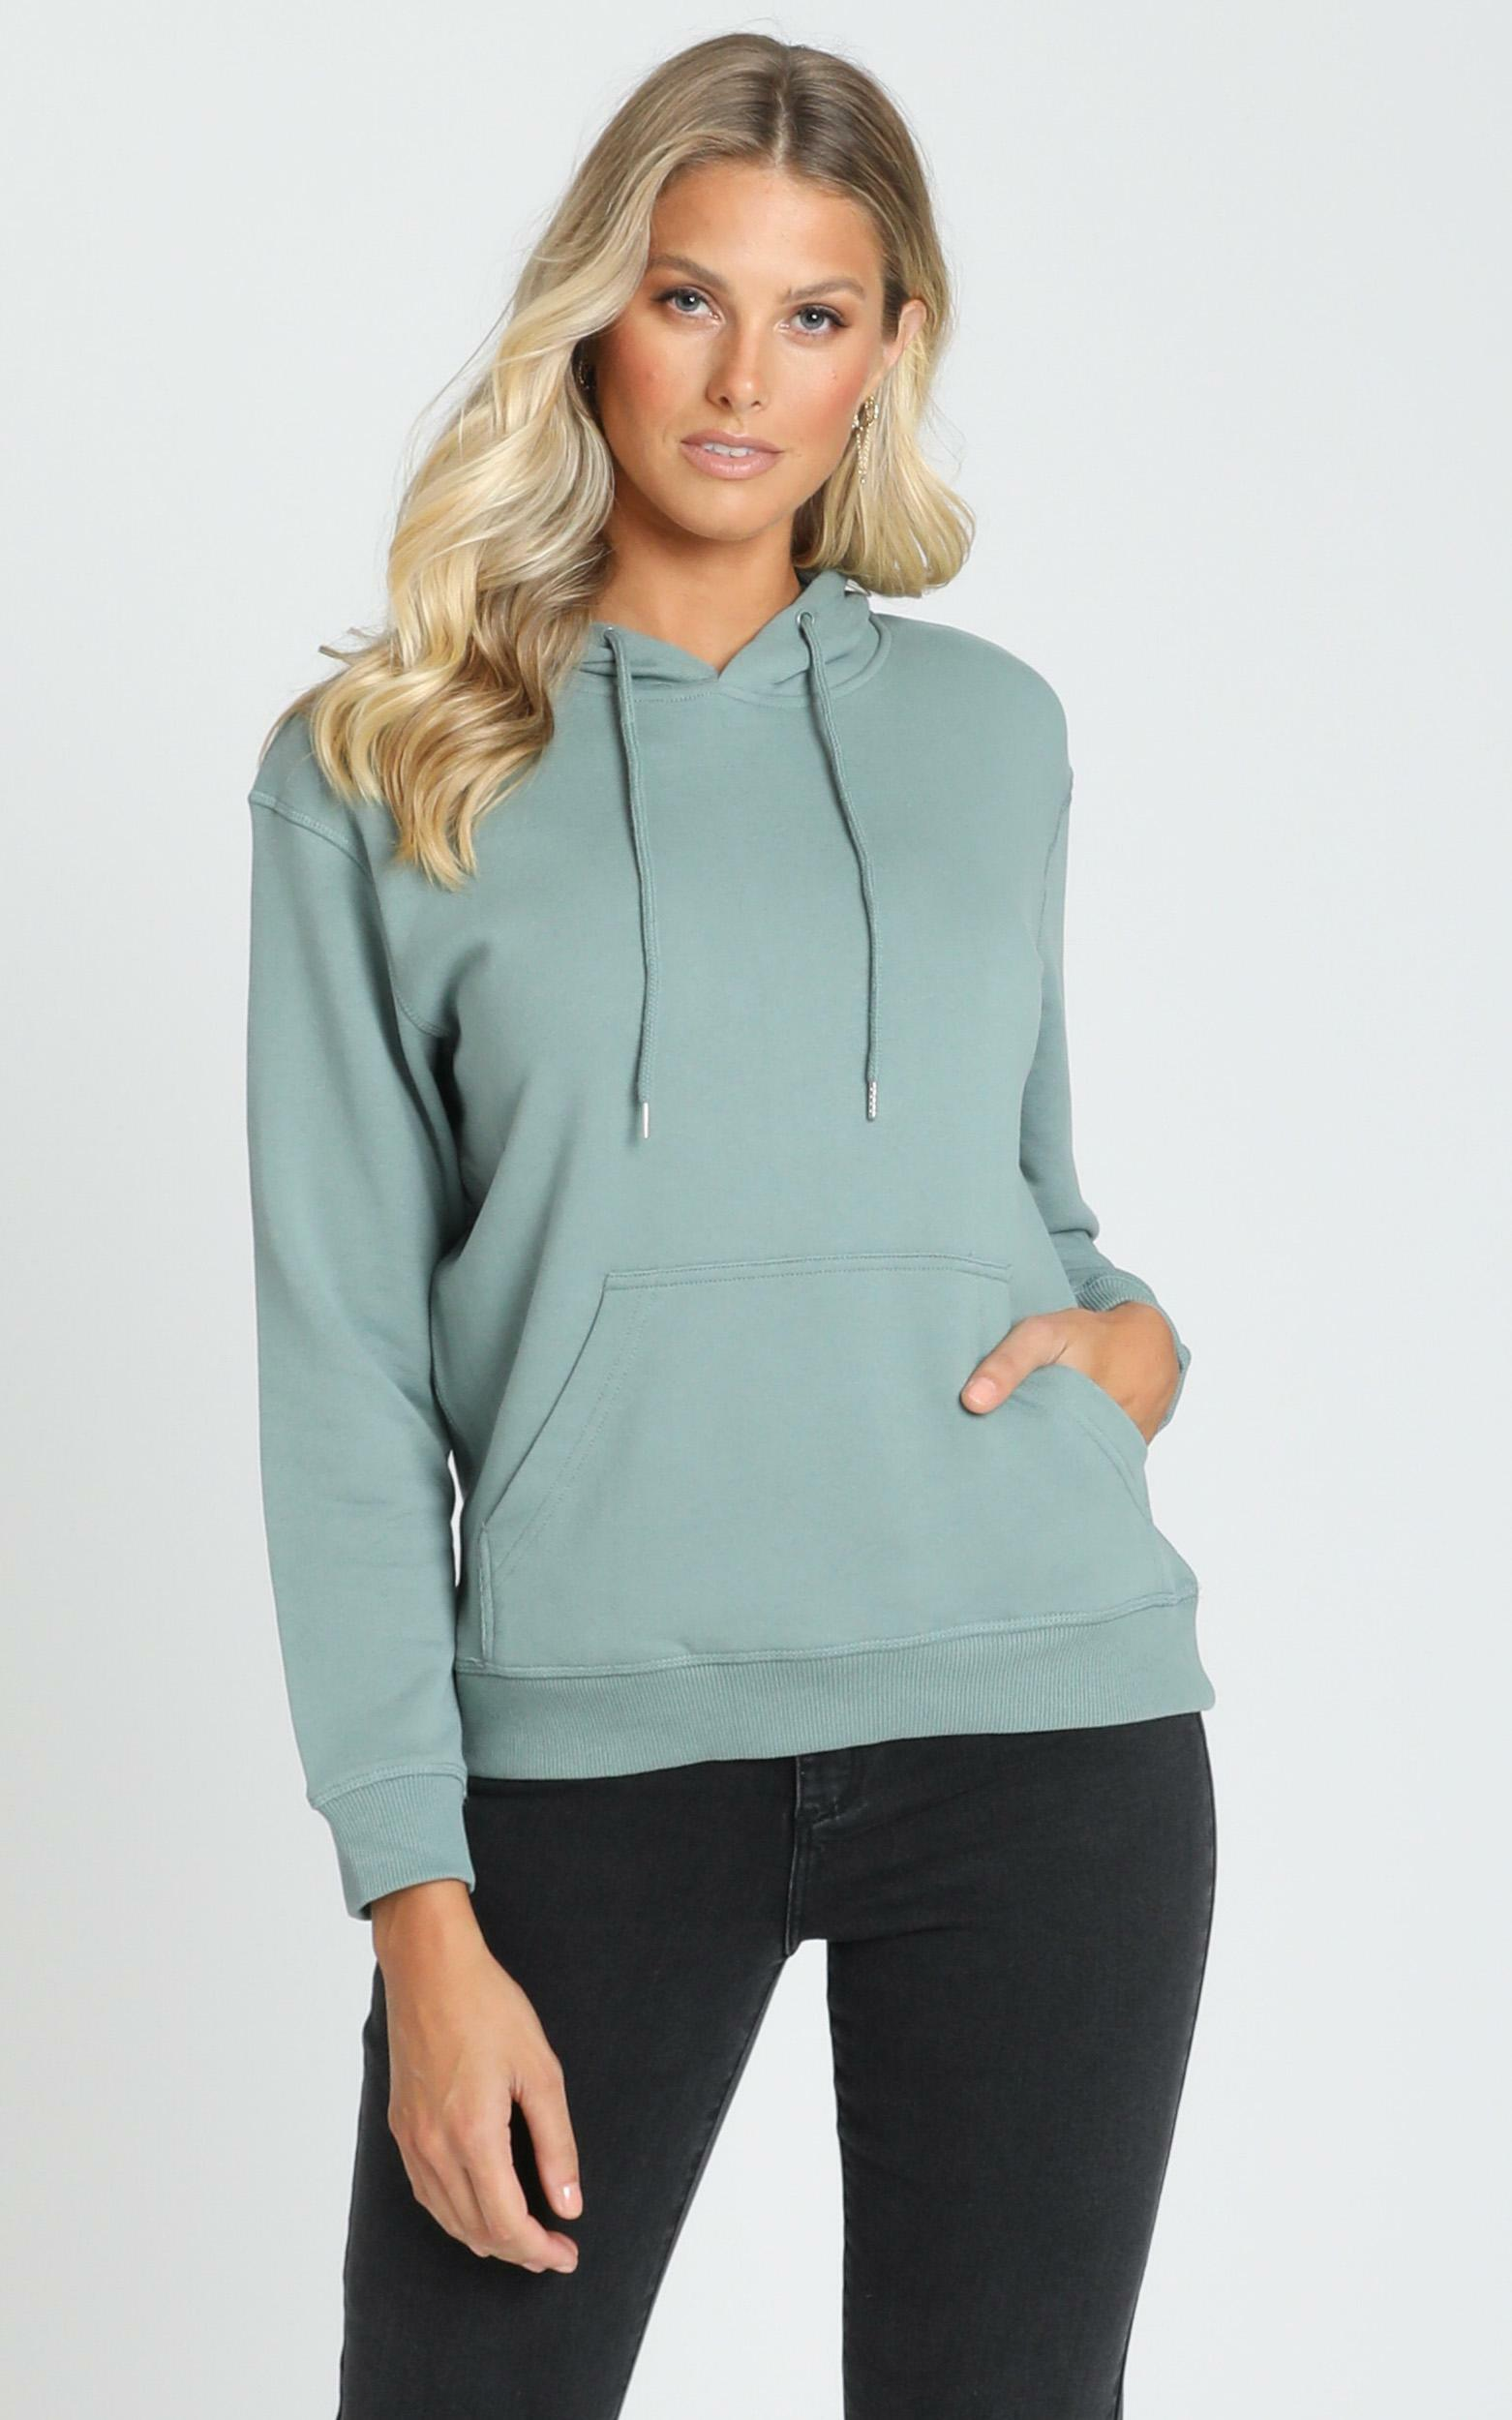 AS Colour - Premium Hood in Sage - XS, Sage, hi-res image number null